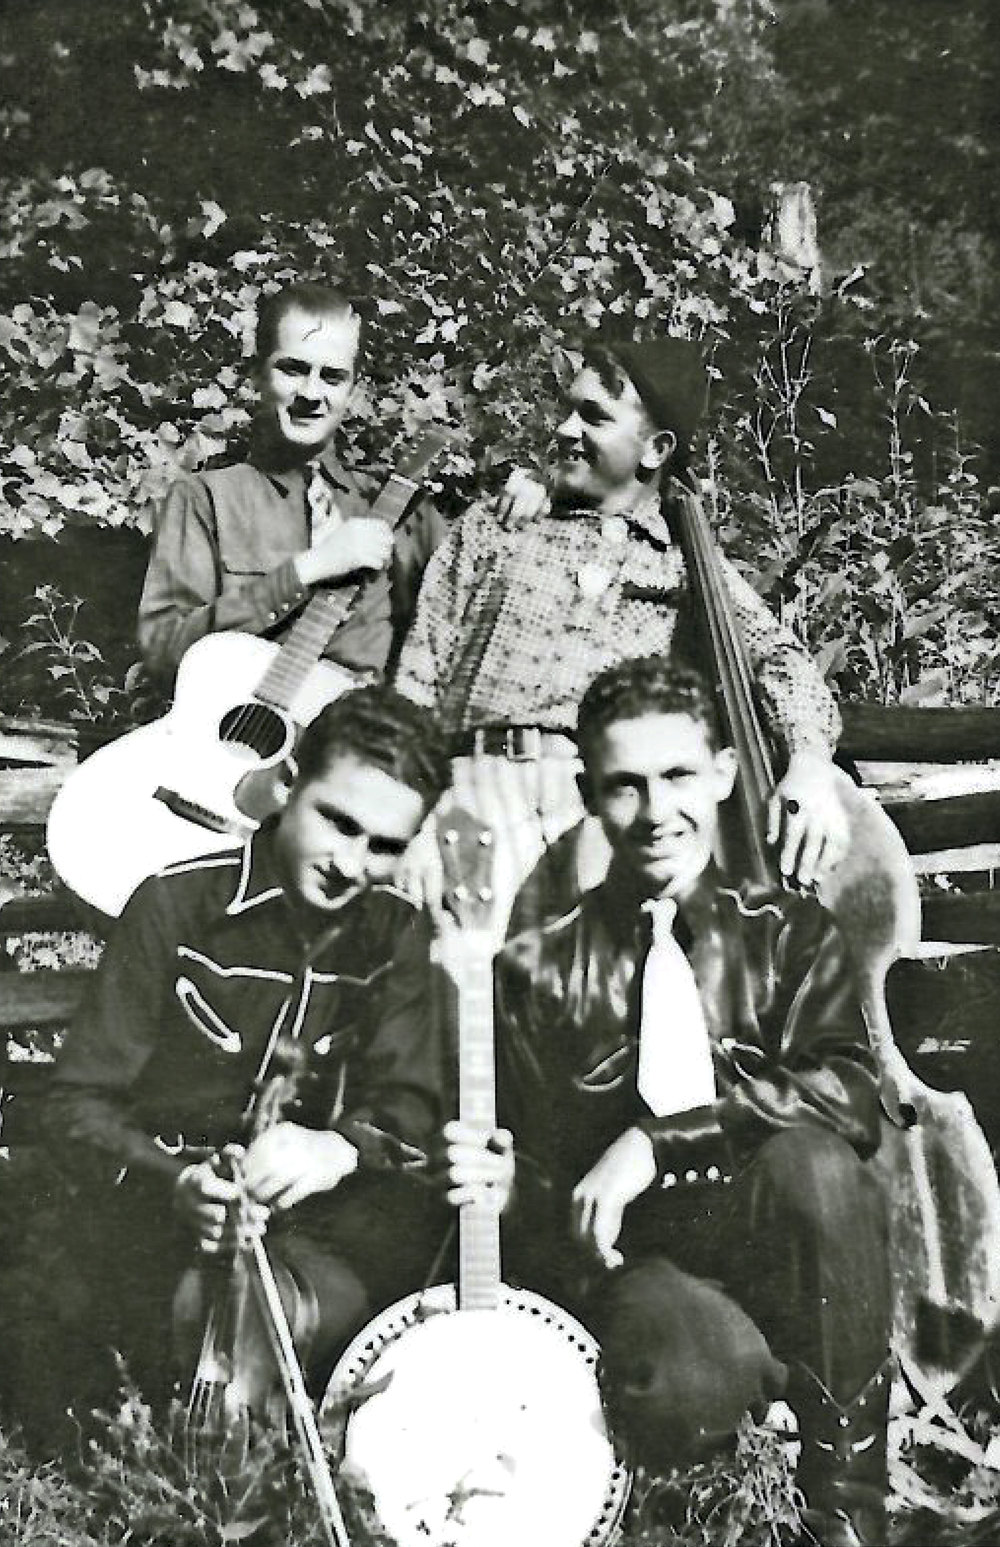 From the Archives:  Early incarnation of The Lonesome Pine Fiddlers taken at Gilbert  Creek, West Virginia in 1938.  Front, Ray and Ireland Cline (brothers); back, Zeke Stepp, Ezra Cline in comedy outfit.  Donated by Scotty Cline.